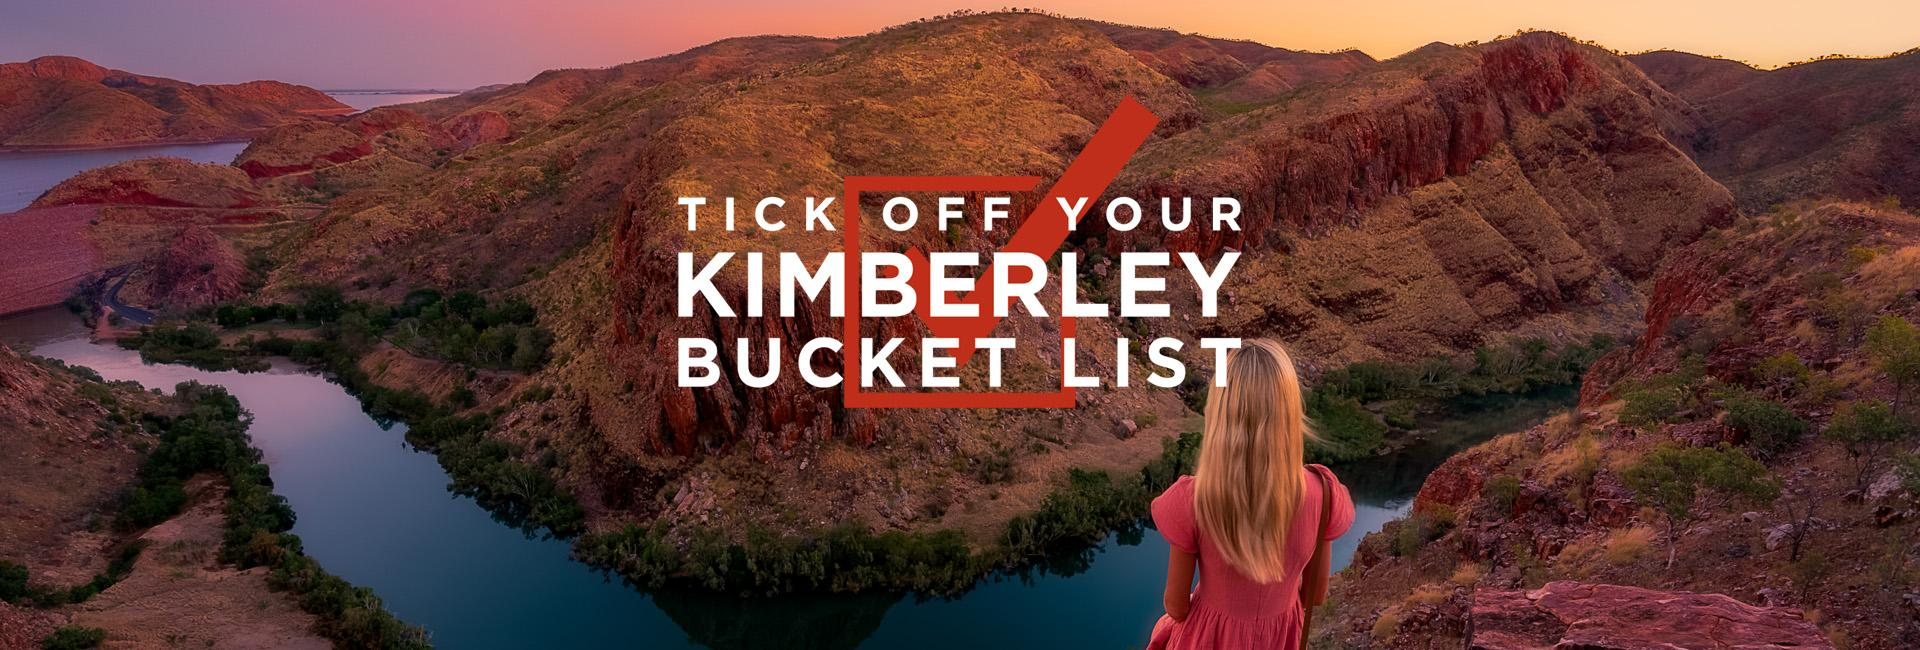 Tick off your Kimberley Bucket List - Ord Gorge Kununurra